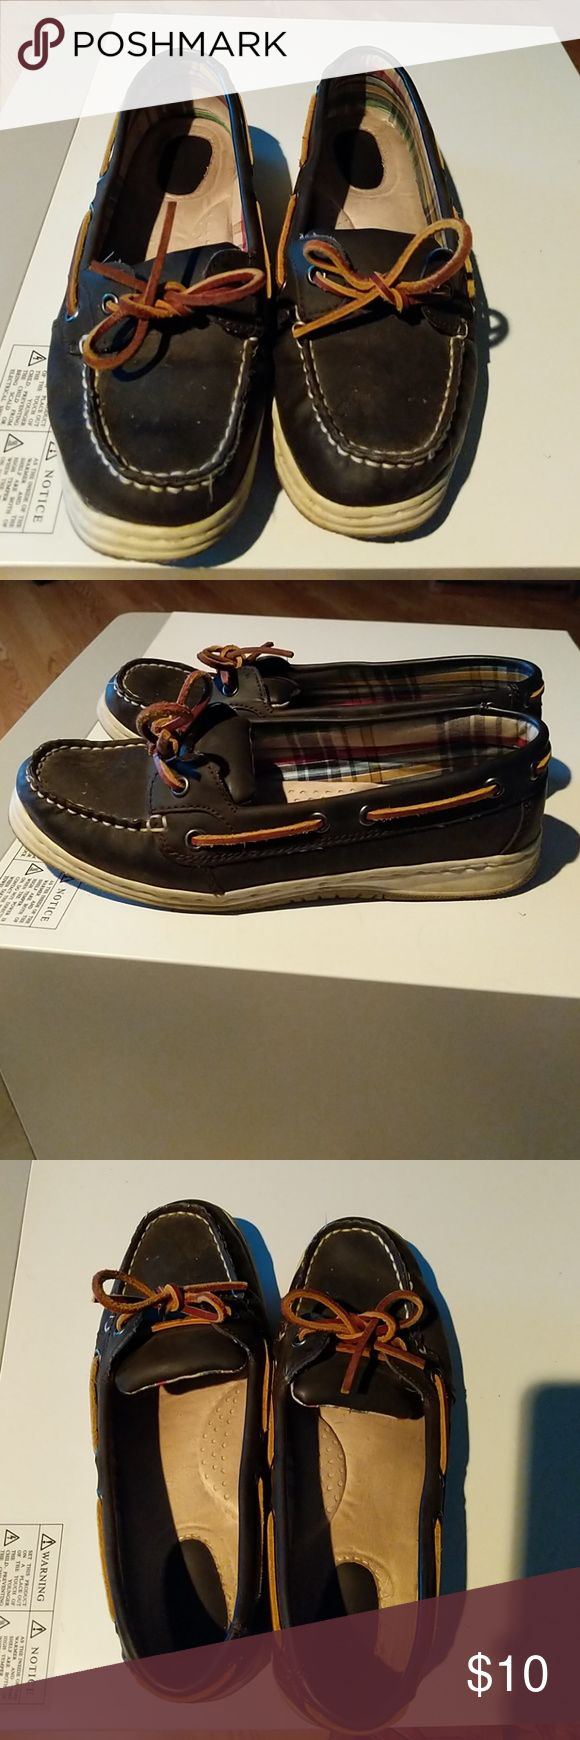 Used boat shoes These have been worn but still in good shape Bass Shoes Moccasins